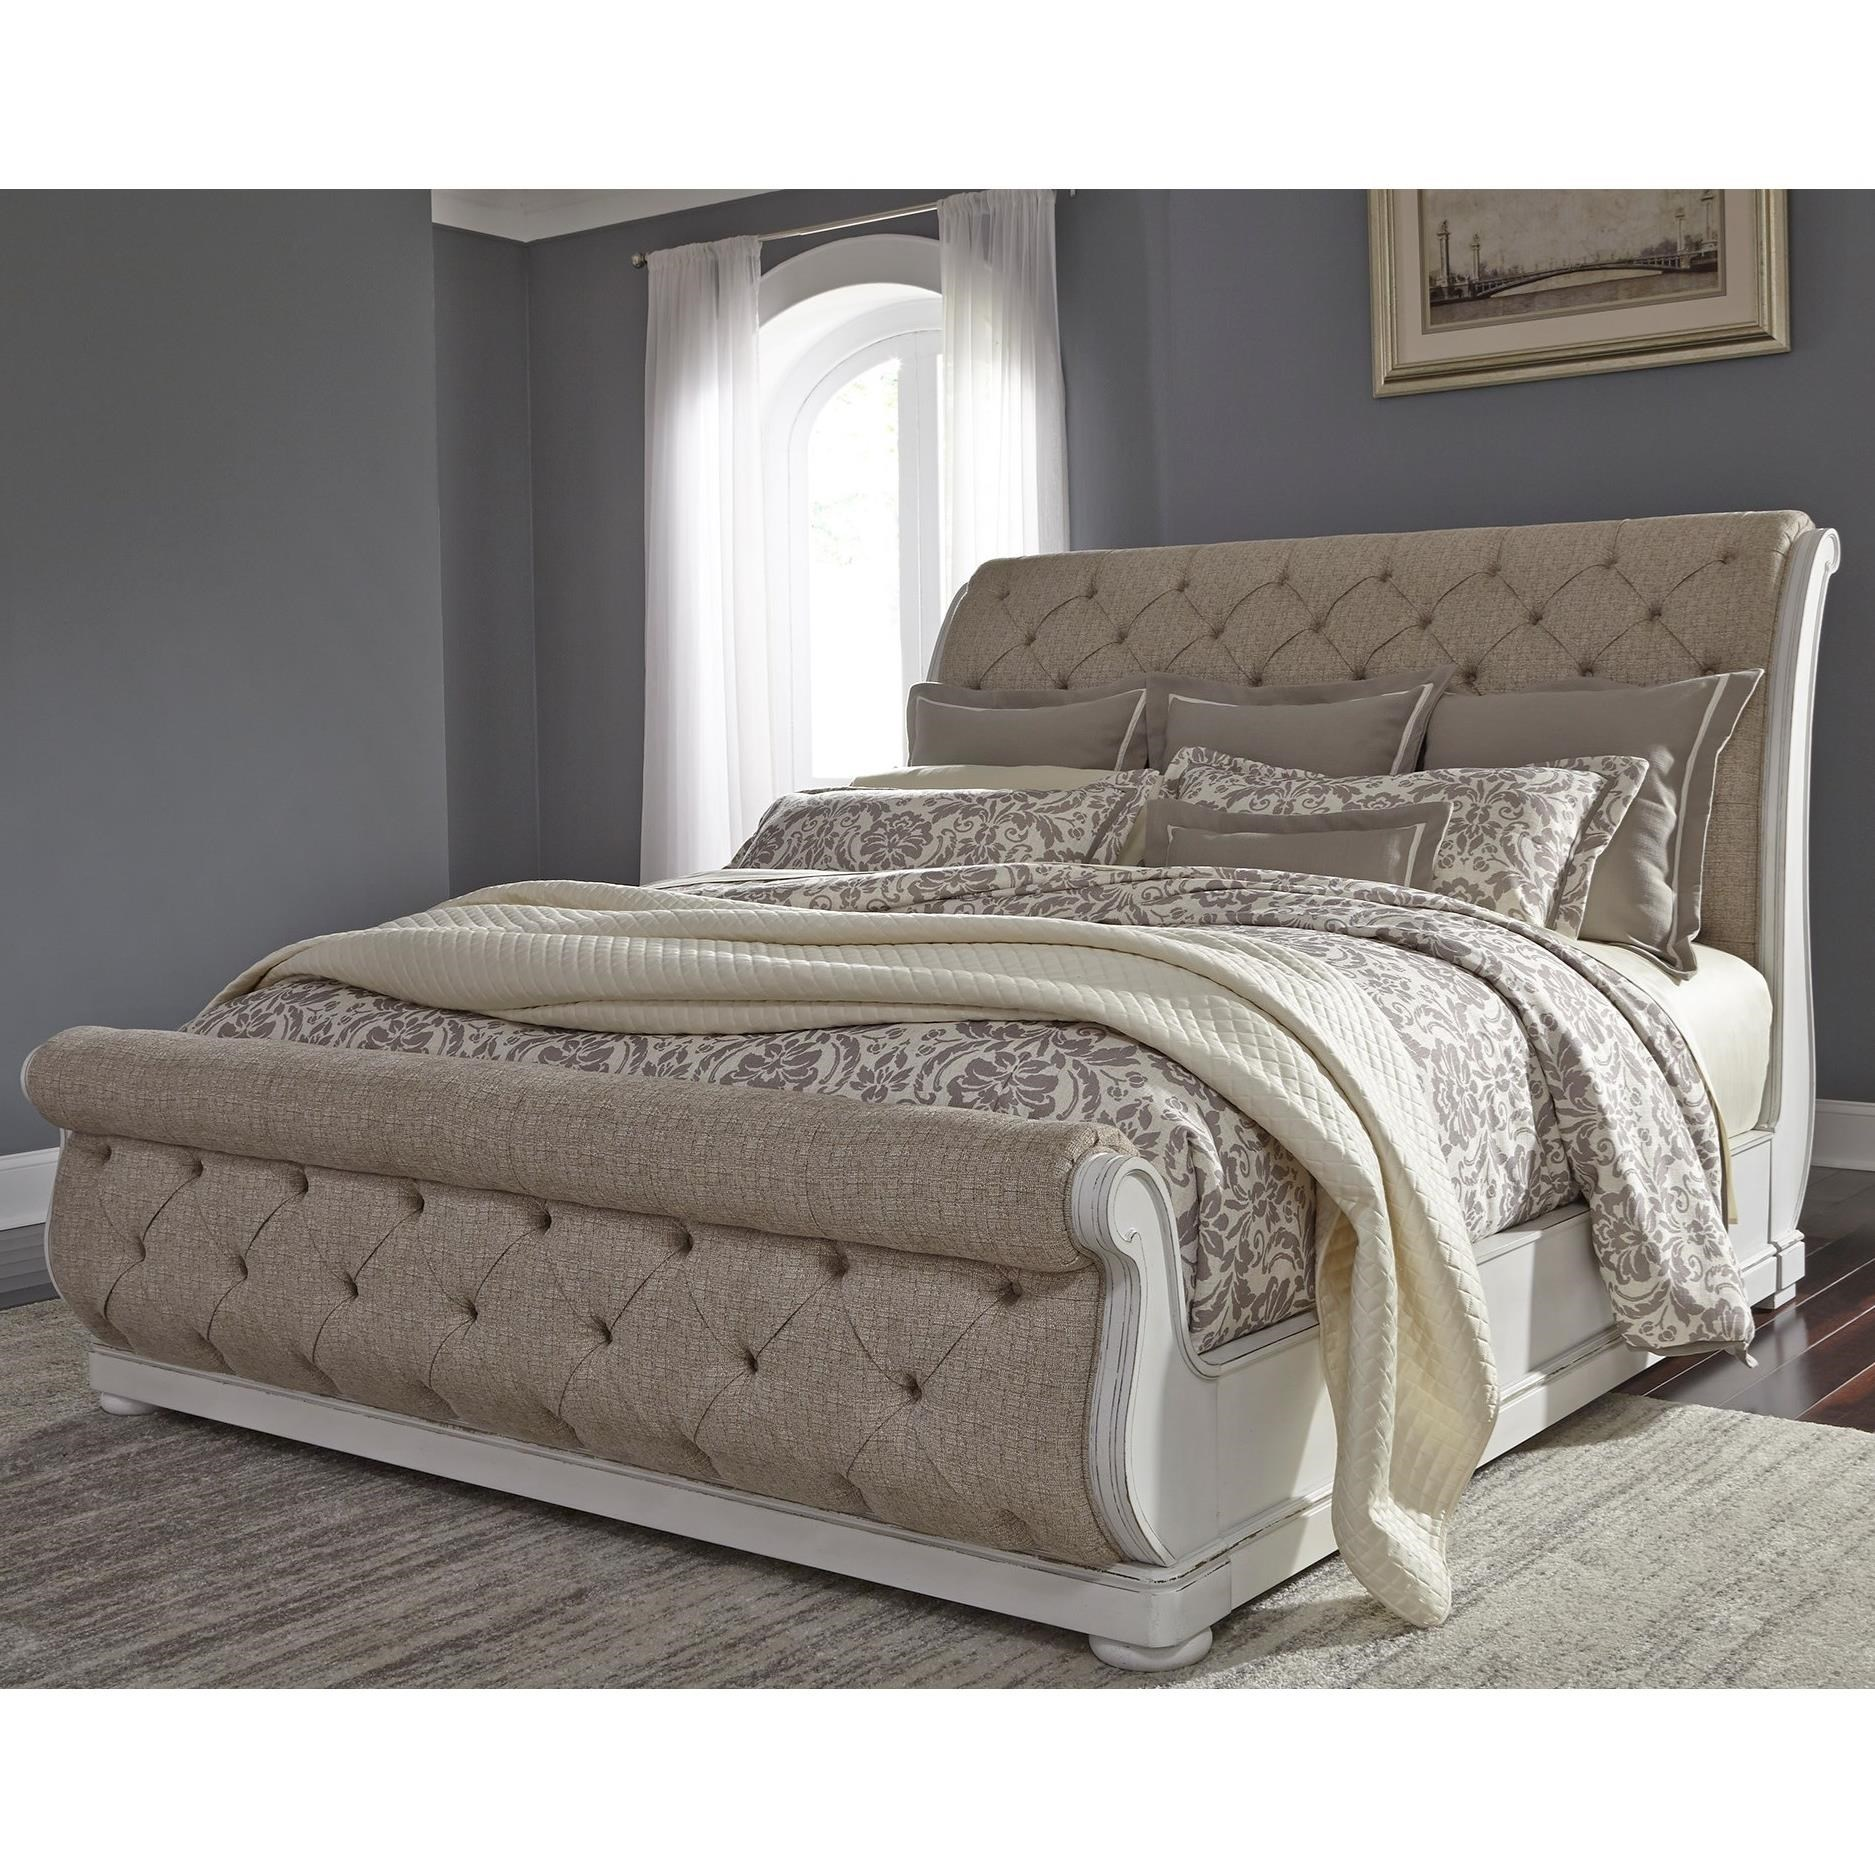 Liberty Furniture Abbey Park Traditional Upholstered Queen Sleigh Bed